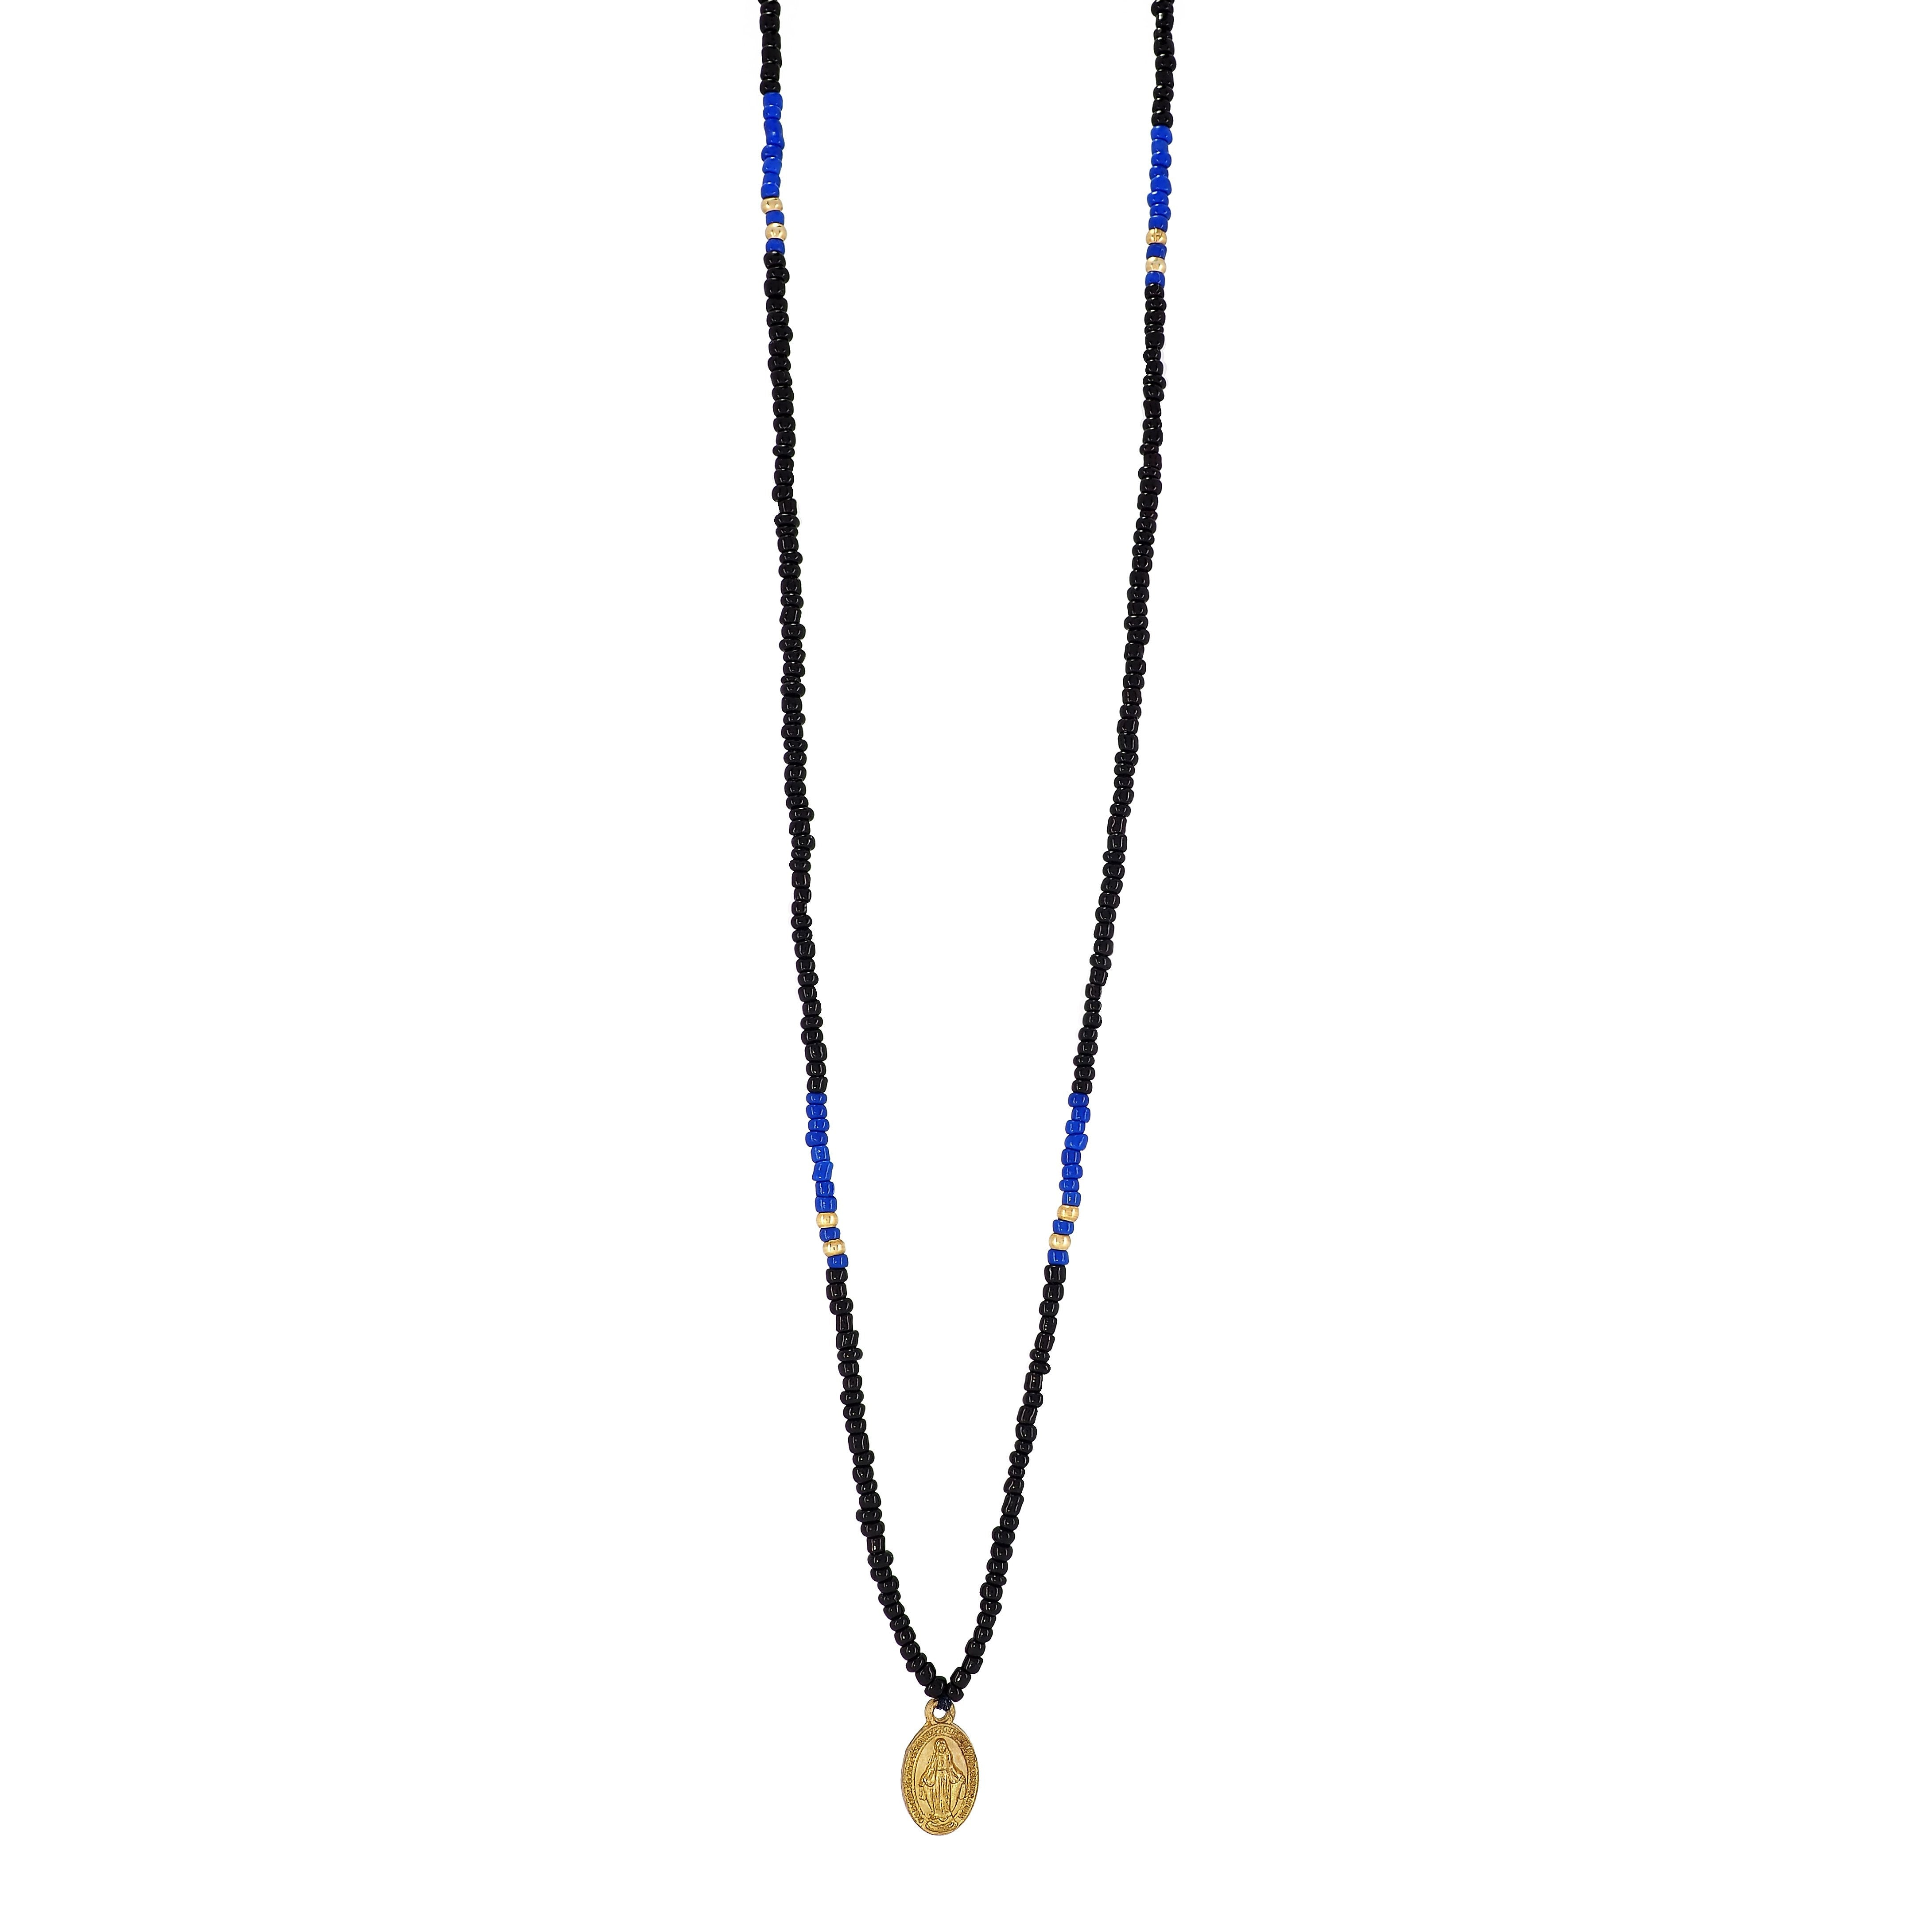 One long String Necklace feat. Black and Azure glass and Gold plated beads and a dainty Gold plated Holy Mary medal from Colombia.